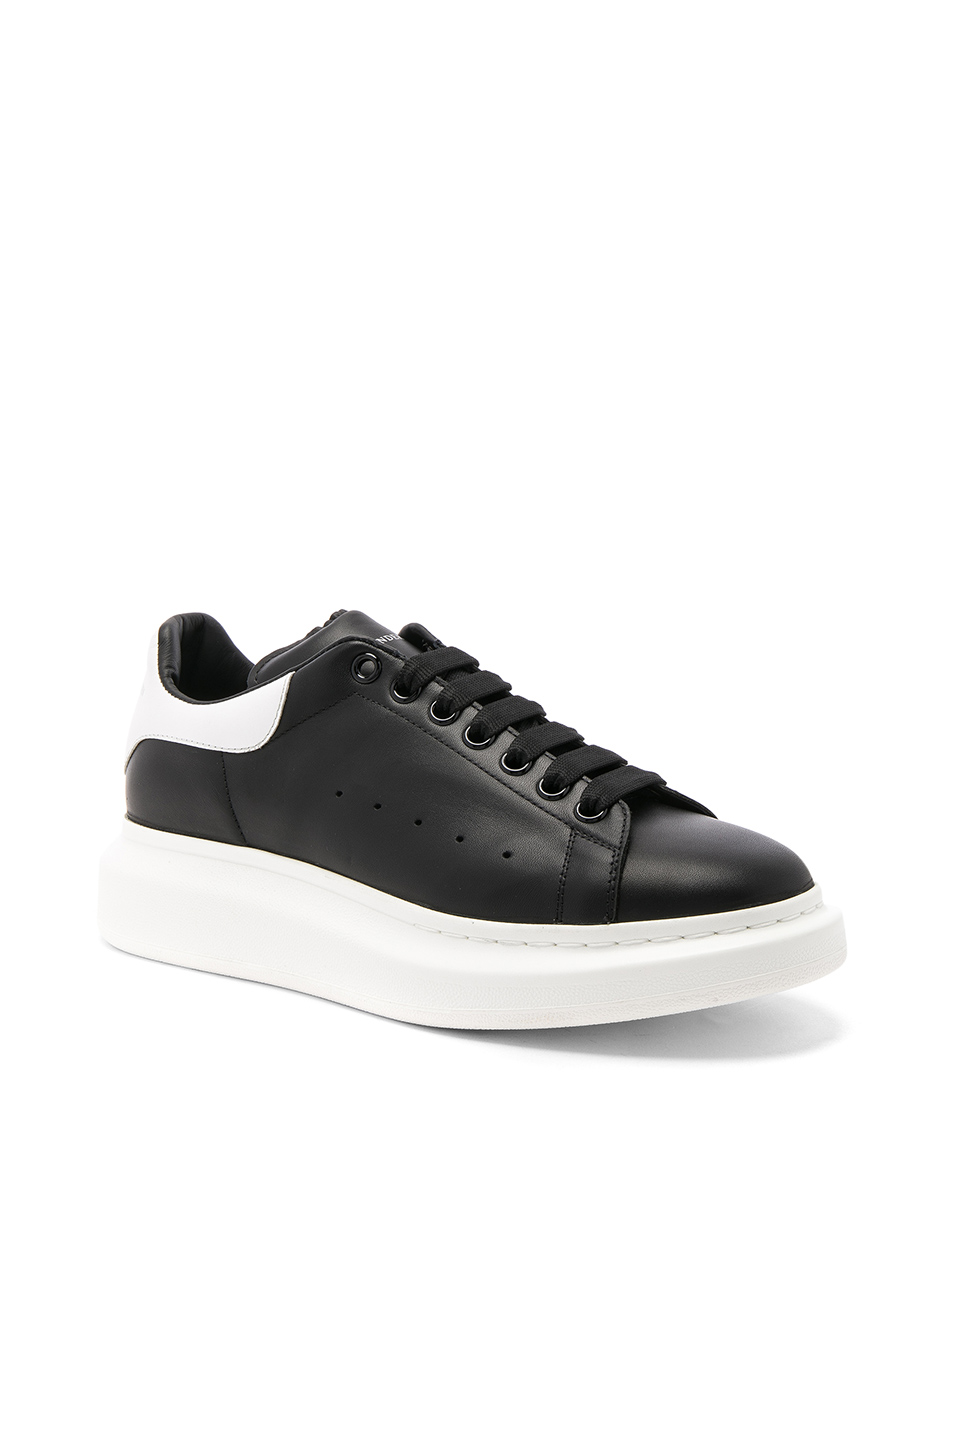 39c792c9e88f Alexander McQueen Leather Platform Sneakers  Alexander McQueen Leather  Platform Sneakers ...